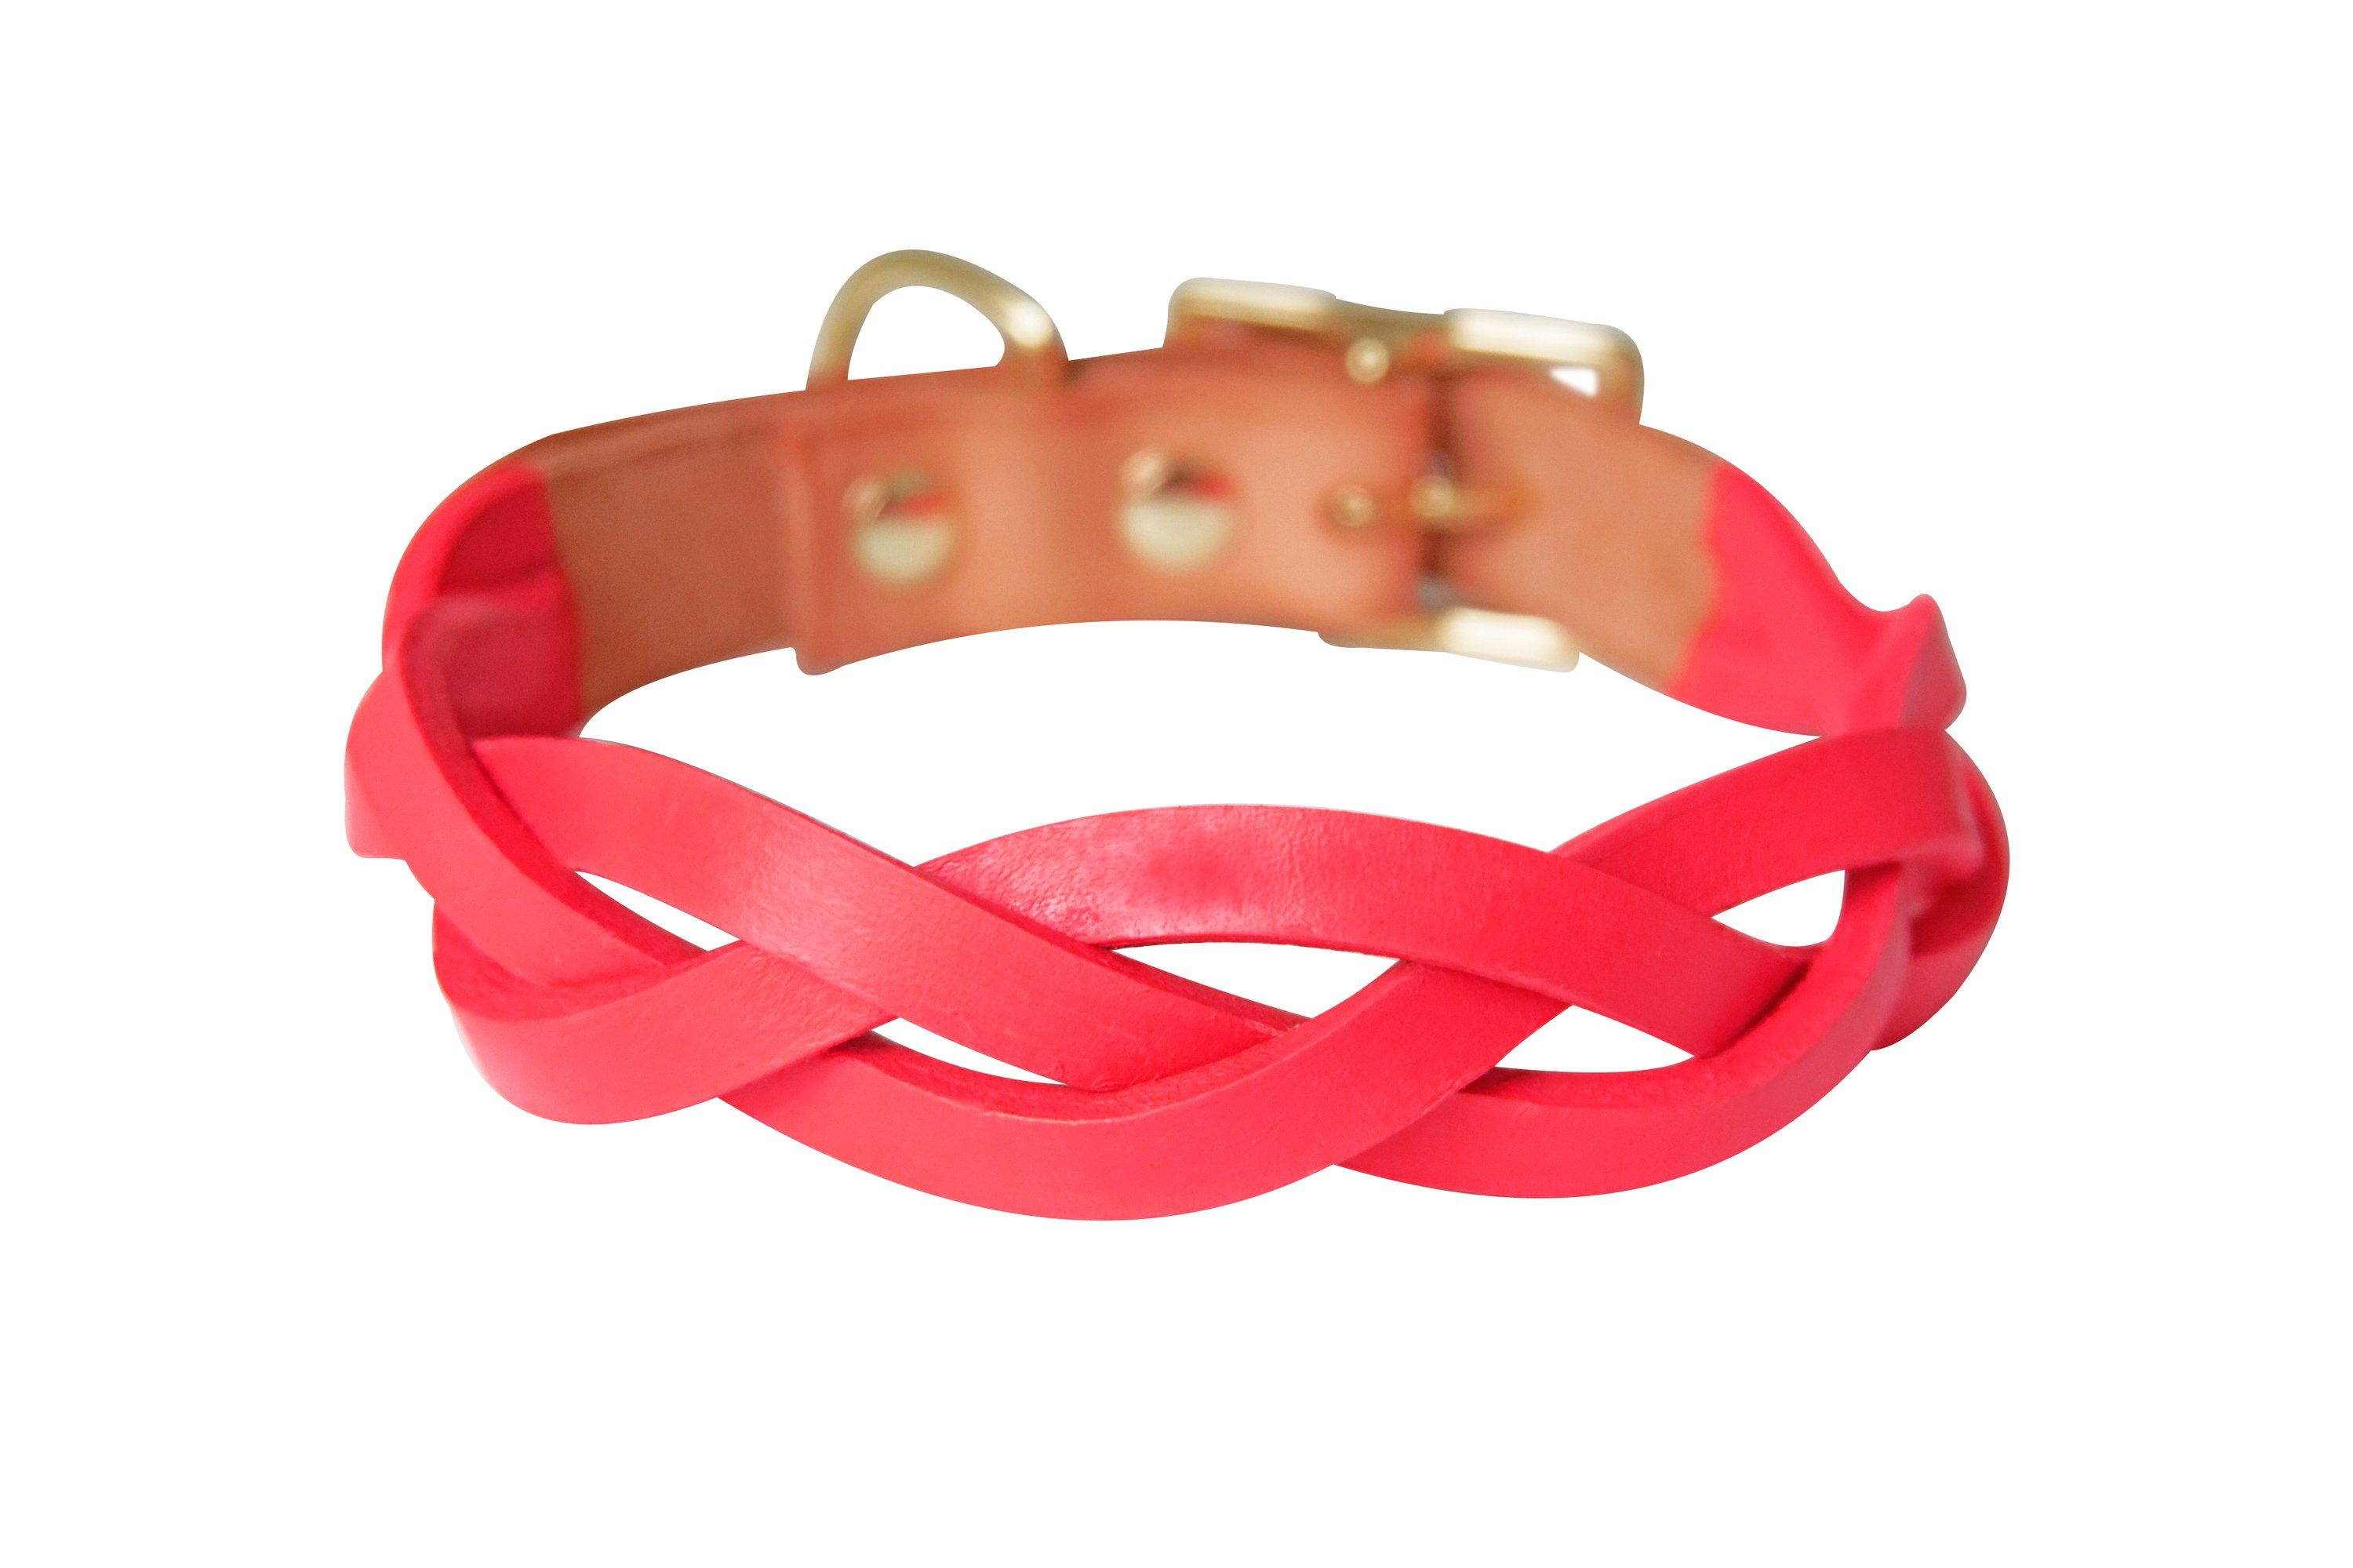 Infrared Colorblock Braided Leather Collar - SHOP HARX